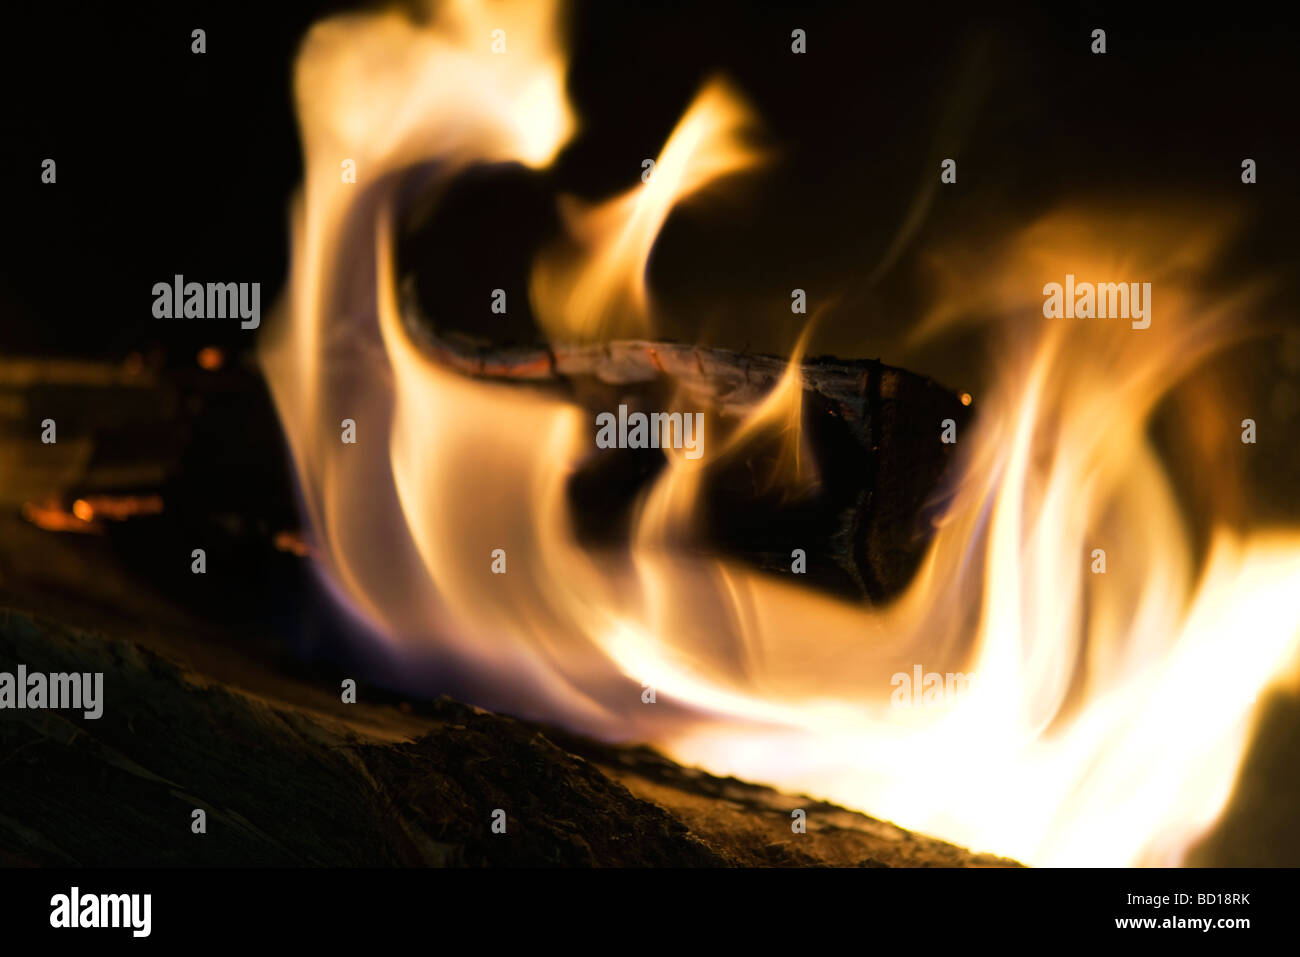 Feuer, close-up Stockbild